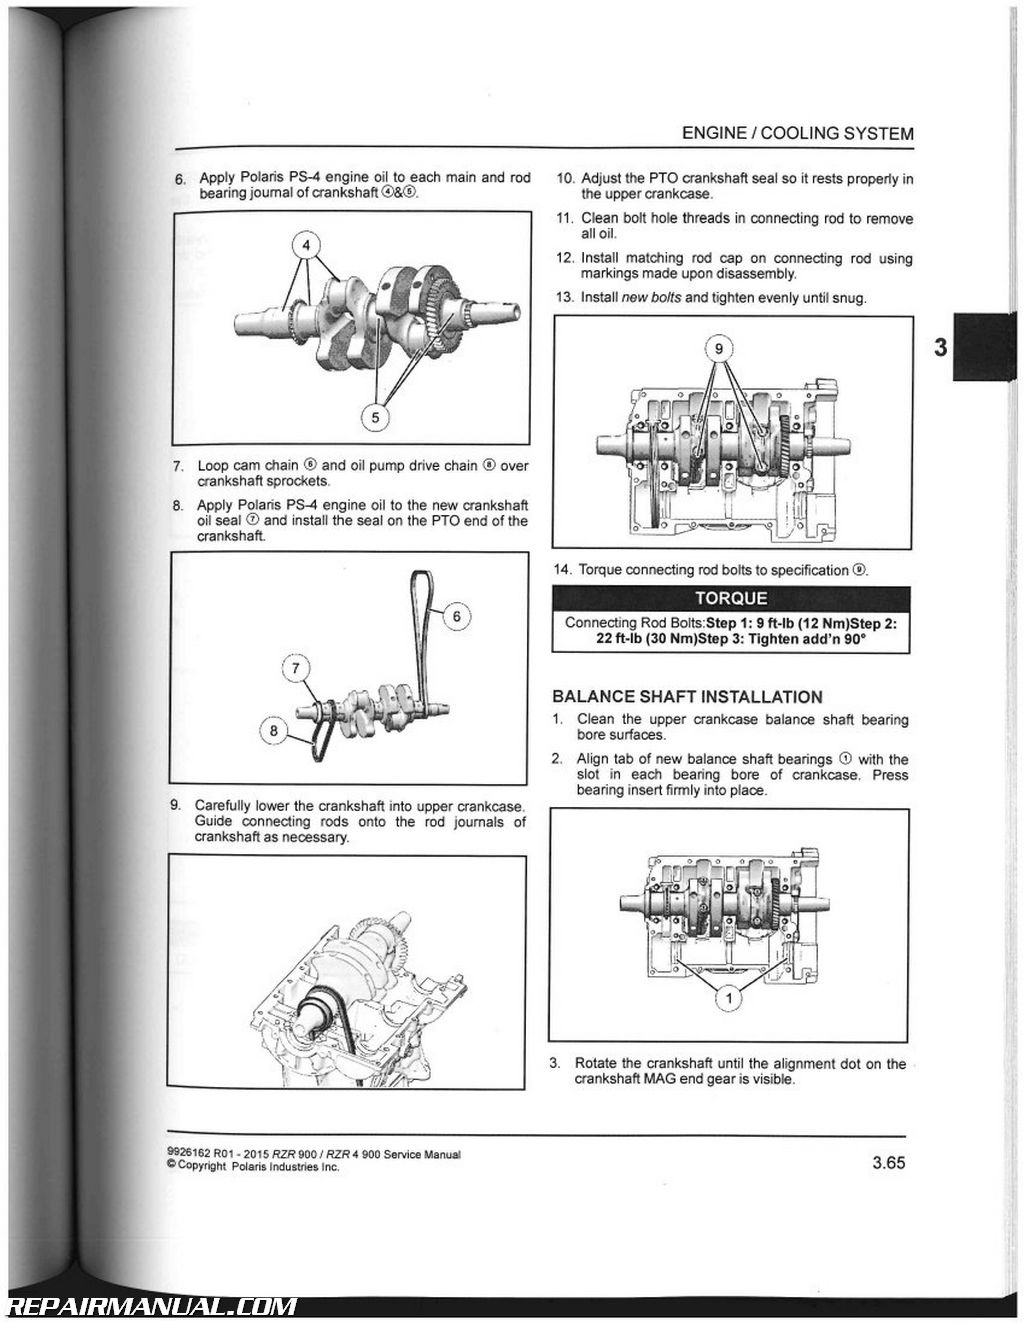 Rzr 4 Wiring Diagram Guide And Troubleshooting Of 2009 Polaris Ranger 2015 900 Side By Service Manual Rh Repairmanual Com 800 Lights